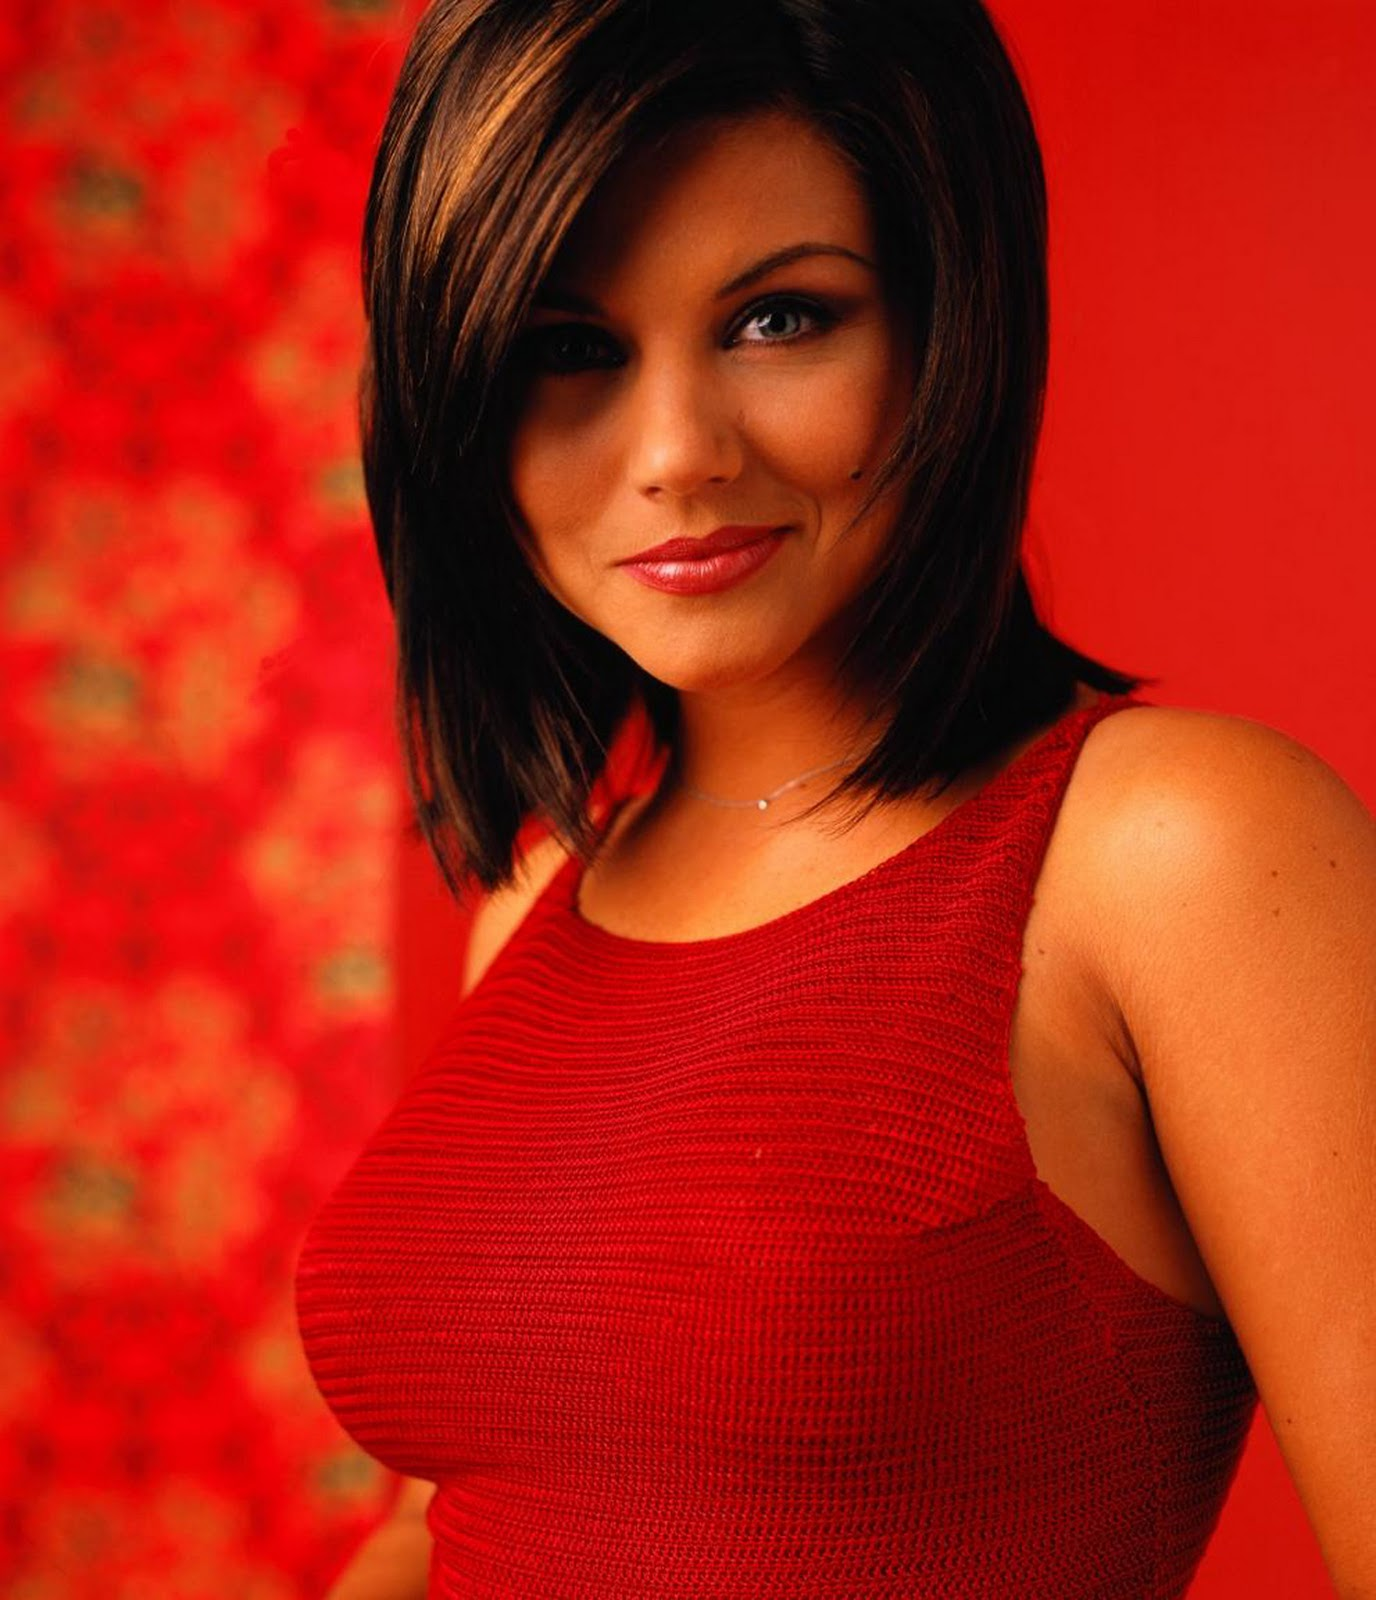 Pussy Tiffani Thiessen nudes (27 photos) Cleavage, Snapchat, cameltoe